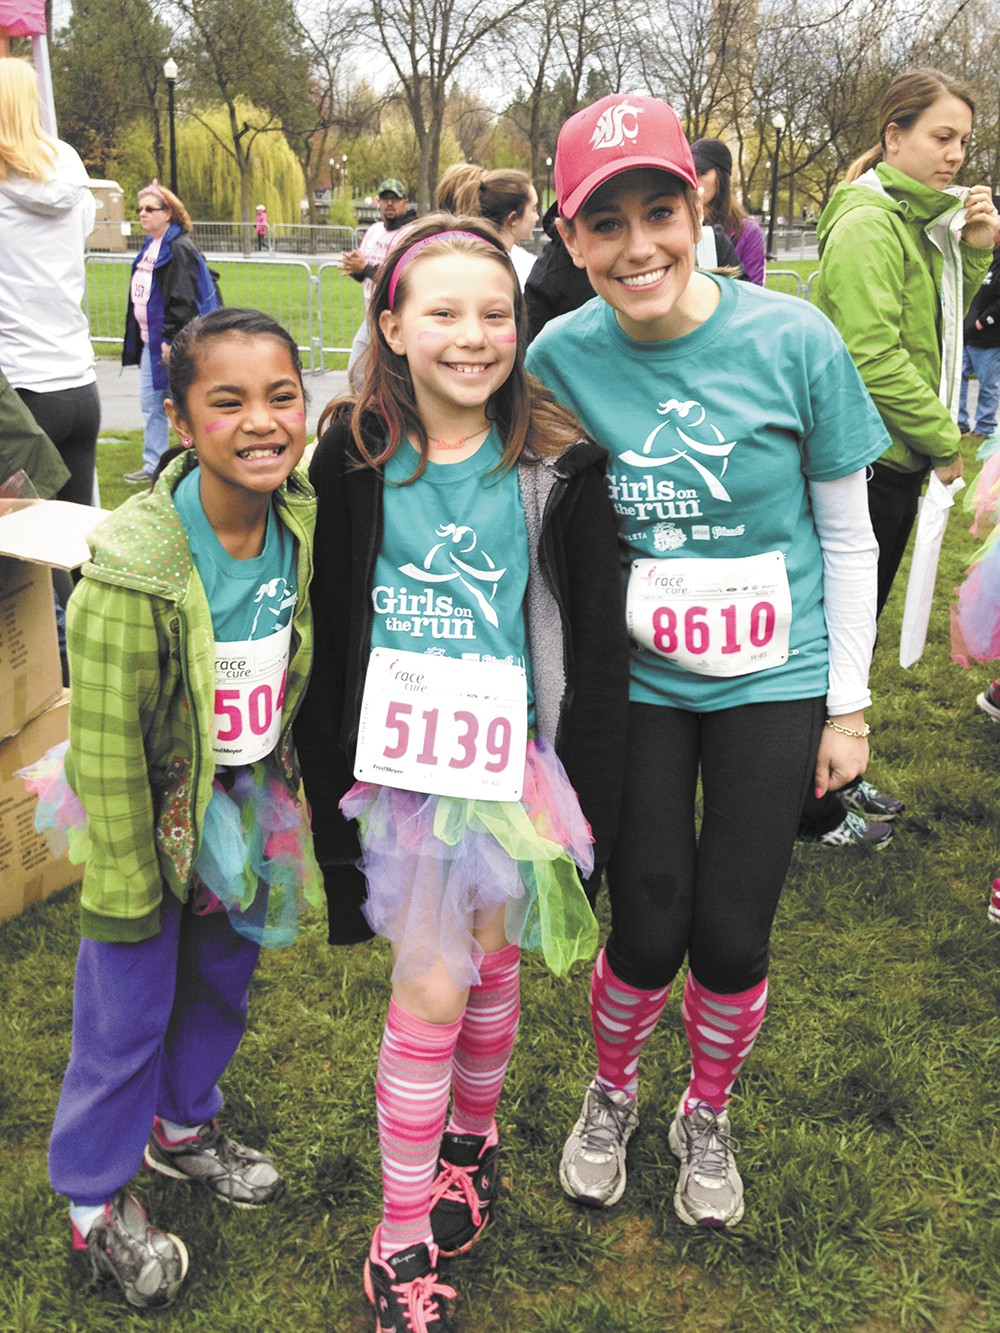 Neshyia and Sarah stop for a picture with their running buddy, Gale Bevington.